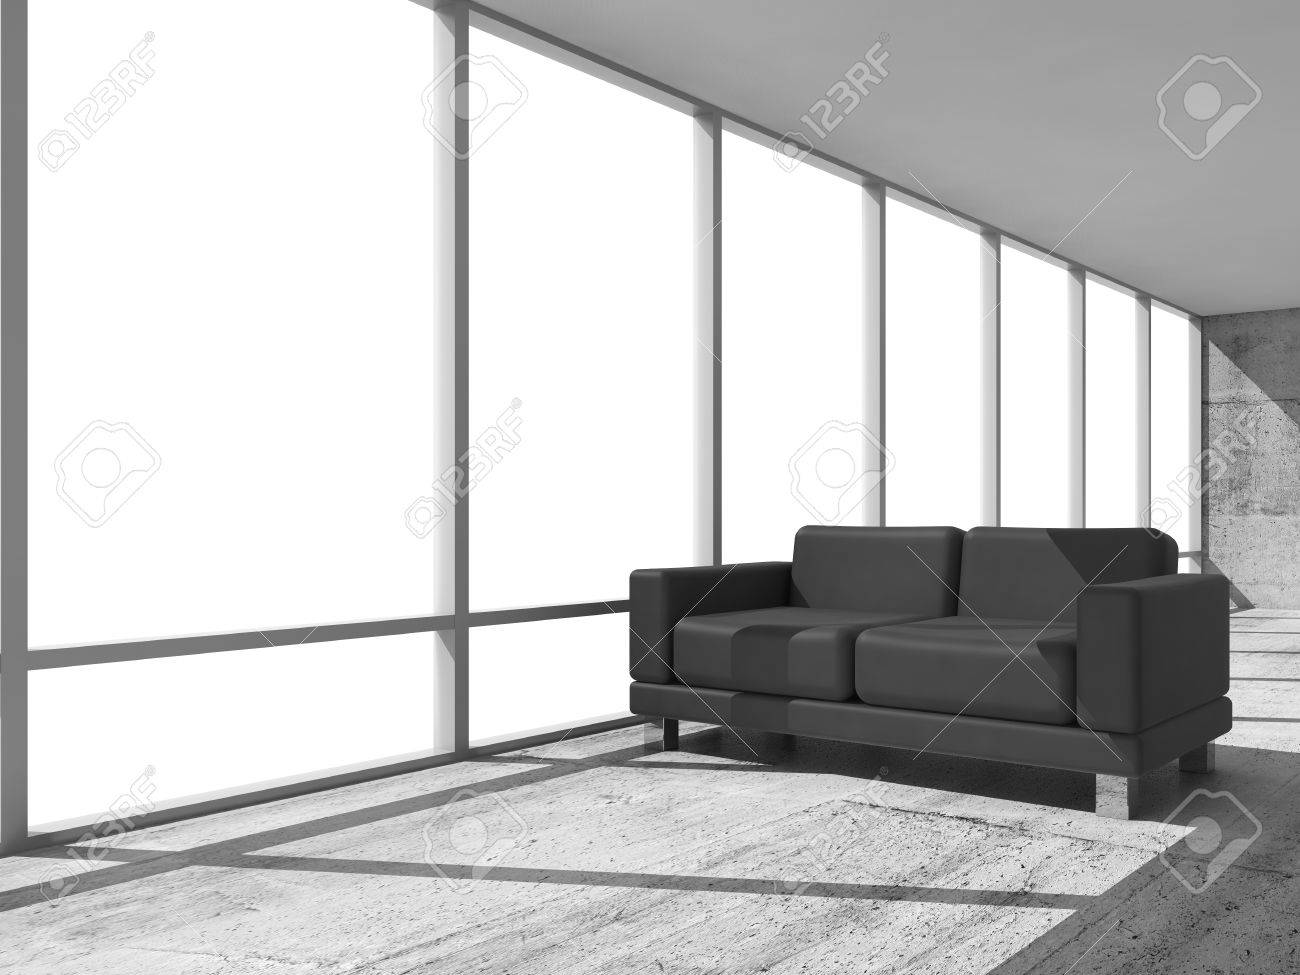 abstract interior office room with concrete floor white window and black leather sofa black leather sofa office